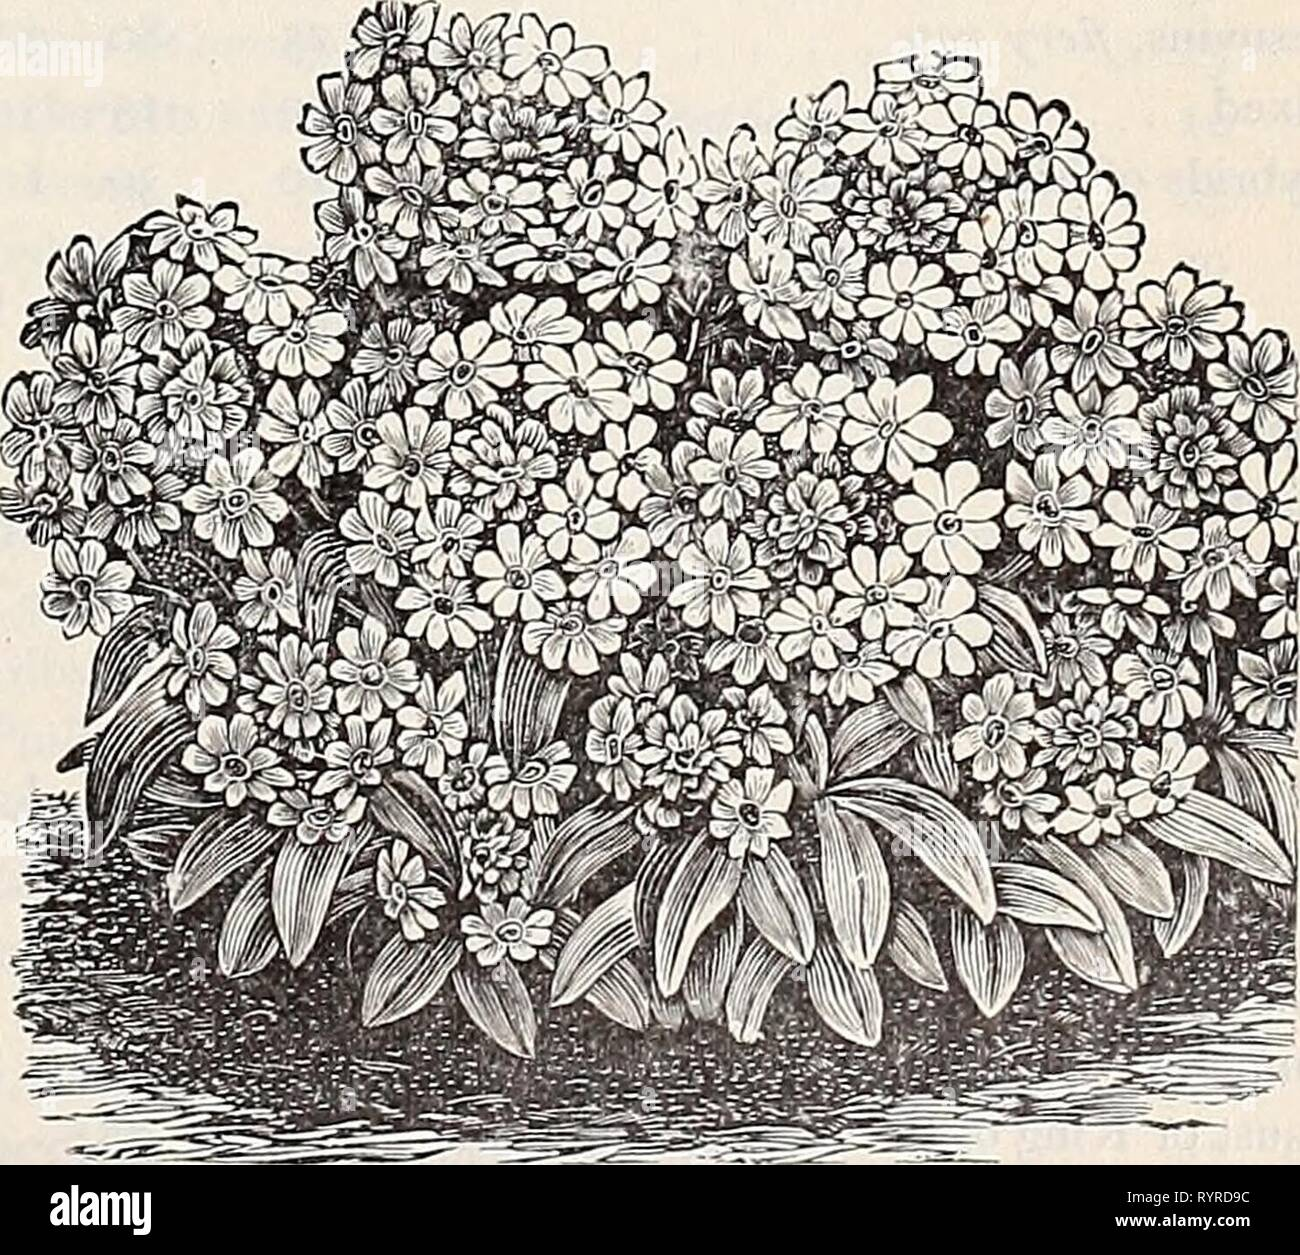 Dreer's quarterly wholesale price list Dreer's quarterly wholesale price list of reliable seeds, plants, bulbs &c . dreersquarterlyw1899henr Year: 1899  Mignonette Machet. Mesembryanthemum tricolor, mixed. . . . cordifolium variegatura Mignonette, large flowering, lb. 40 cts. . . . large flowering, pyramidal Miles' Hybrid Spiral Improved Red Victoria Golden Queen Gabrielle Defiance, very large spikes Machet, t7-ue select stock Parson's white %%%%%%%%%%%%%%%%z.vaon C^yi^^n, highly colored Golden Machet, new, fine Mimosa pudica (Sensitive Plant) Mimulus moschatus [Musk Plant) tigrinus mixed [Mo - Stock Image